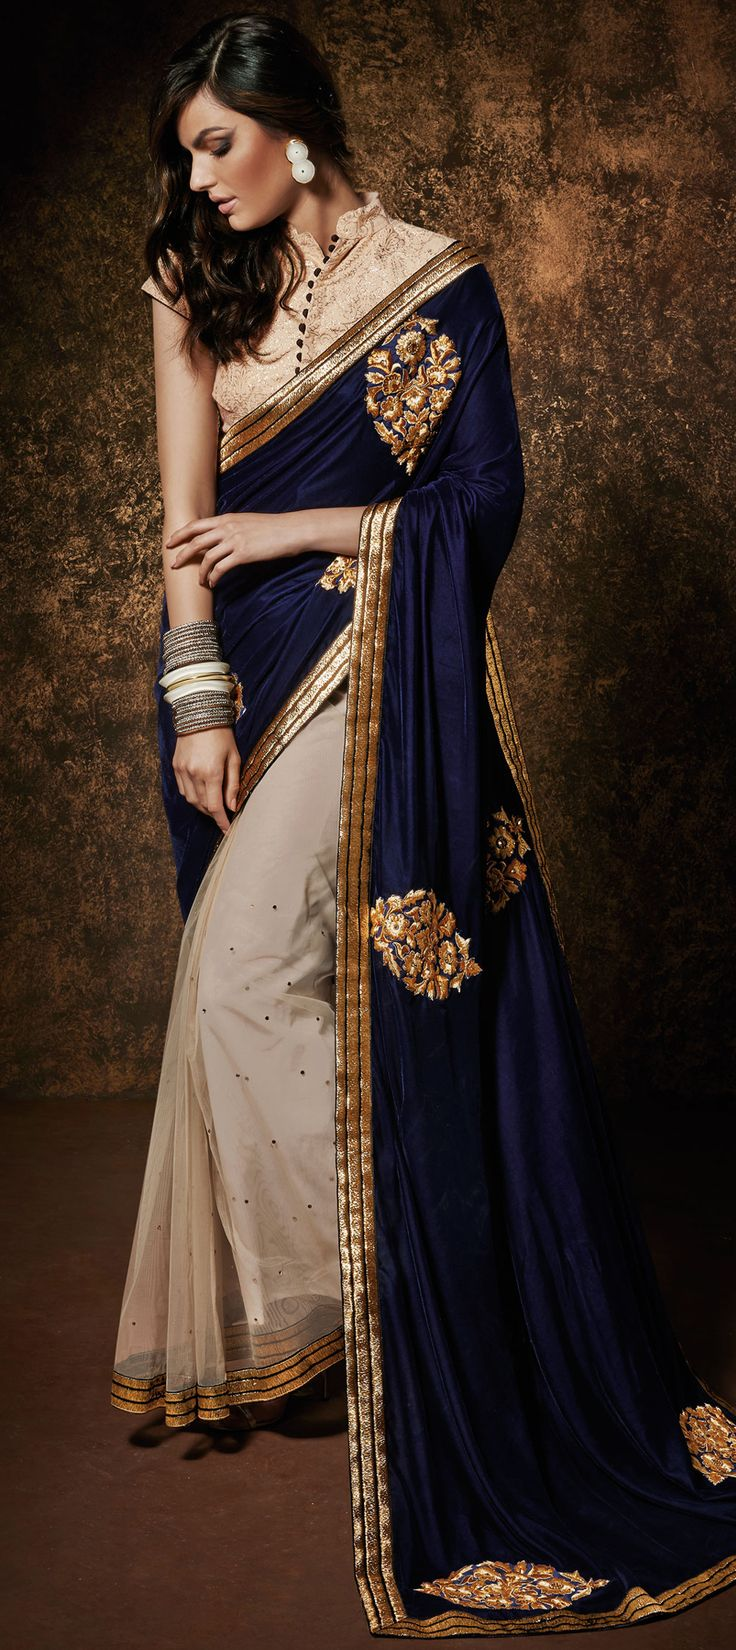 154929: Beige and Brown,Blue color family Embroidered Sarees,Party Wear Sarees with matching unstitched blouse.